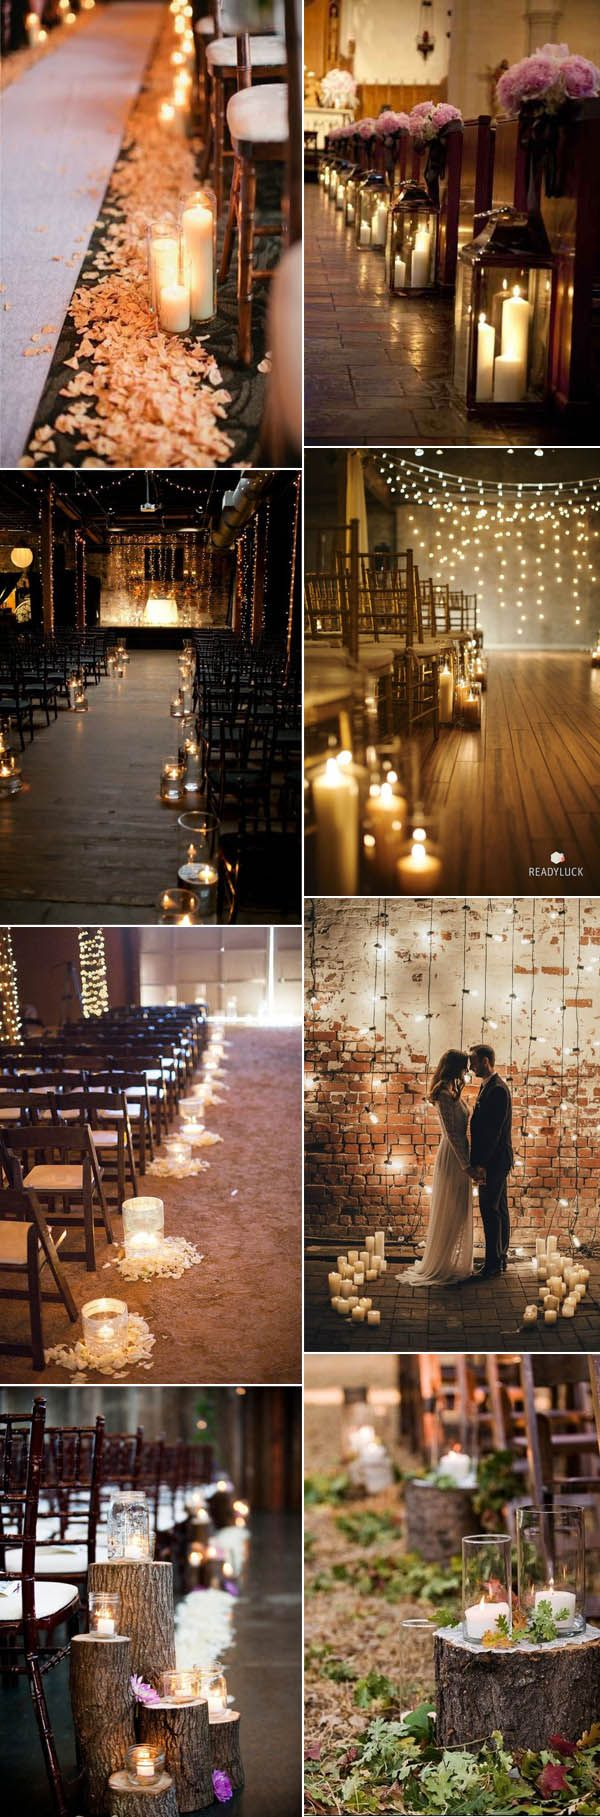 Wedding house decoration ideas   Fancy Candlelight Ideas to Add Romance to Your Weddings